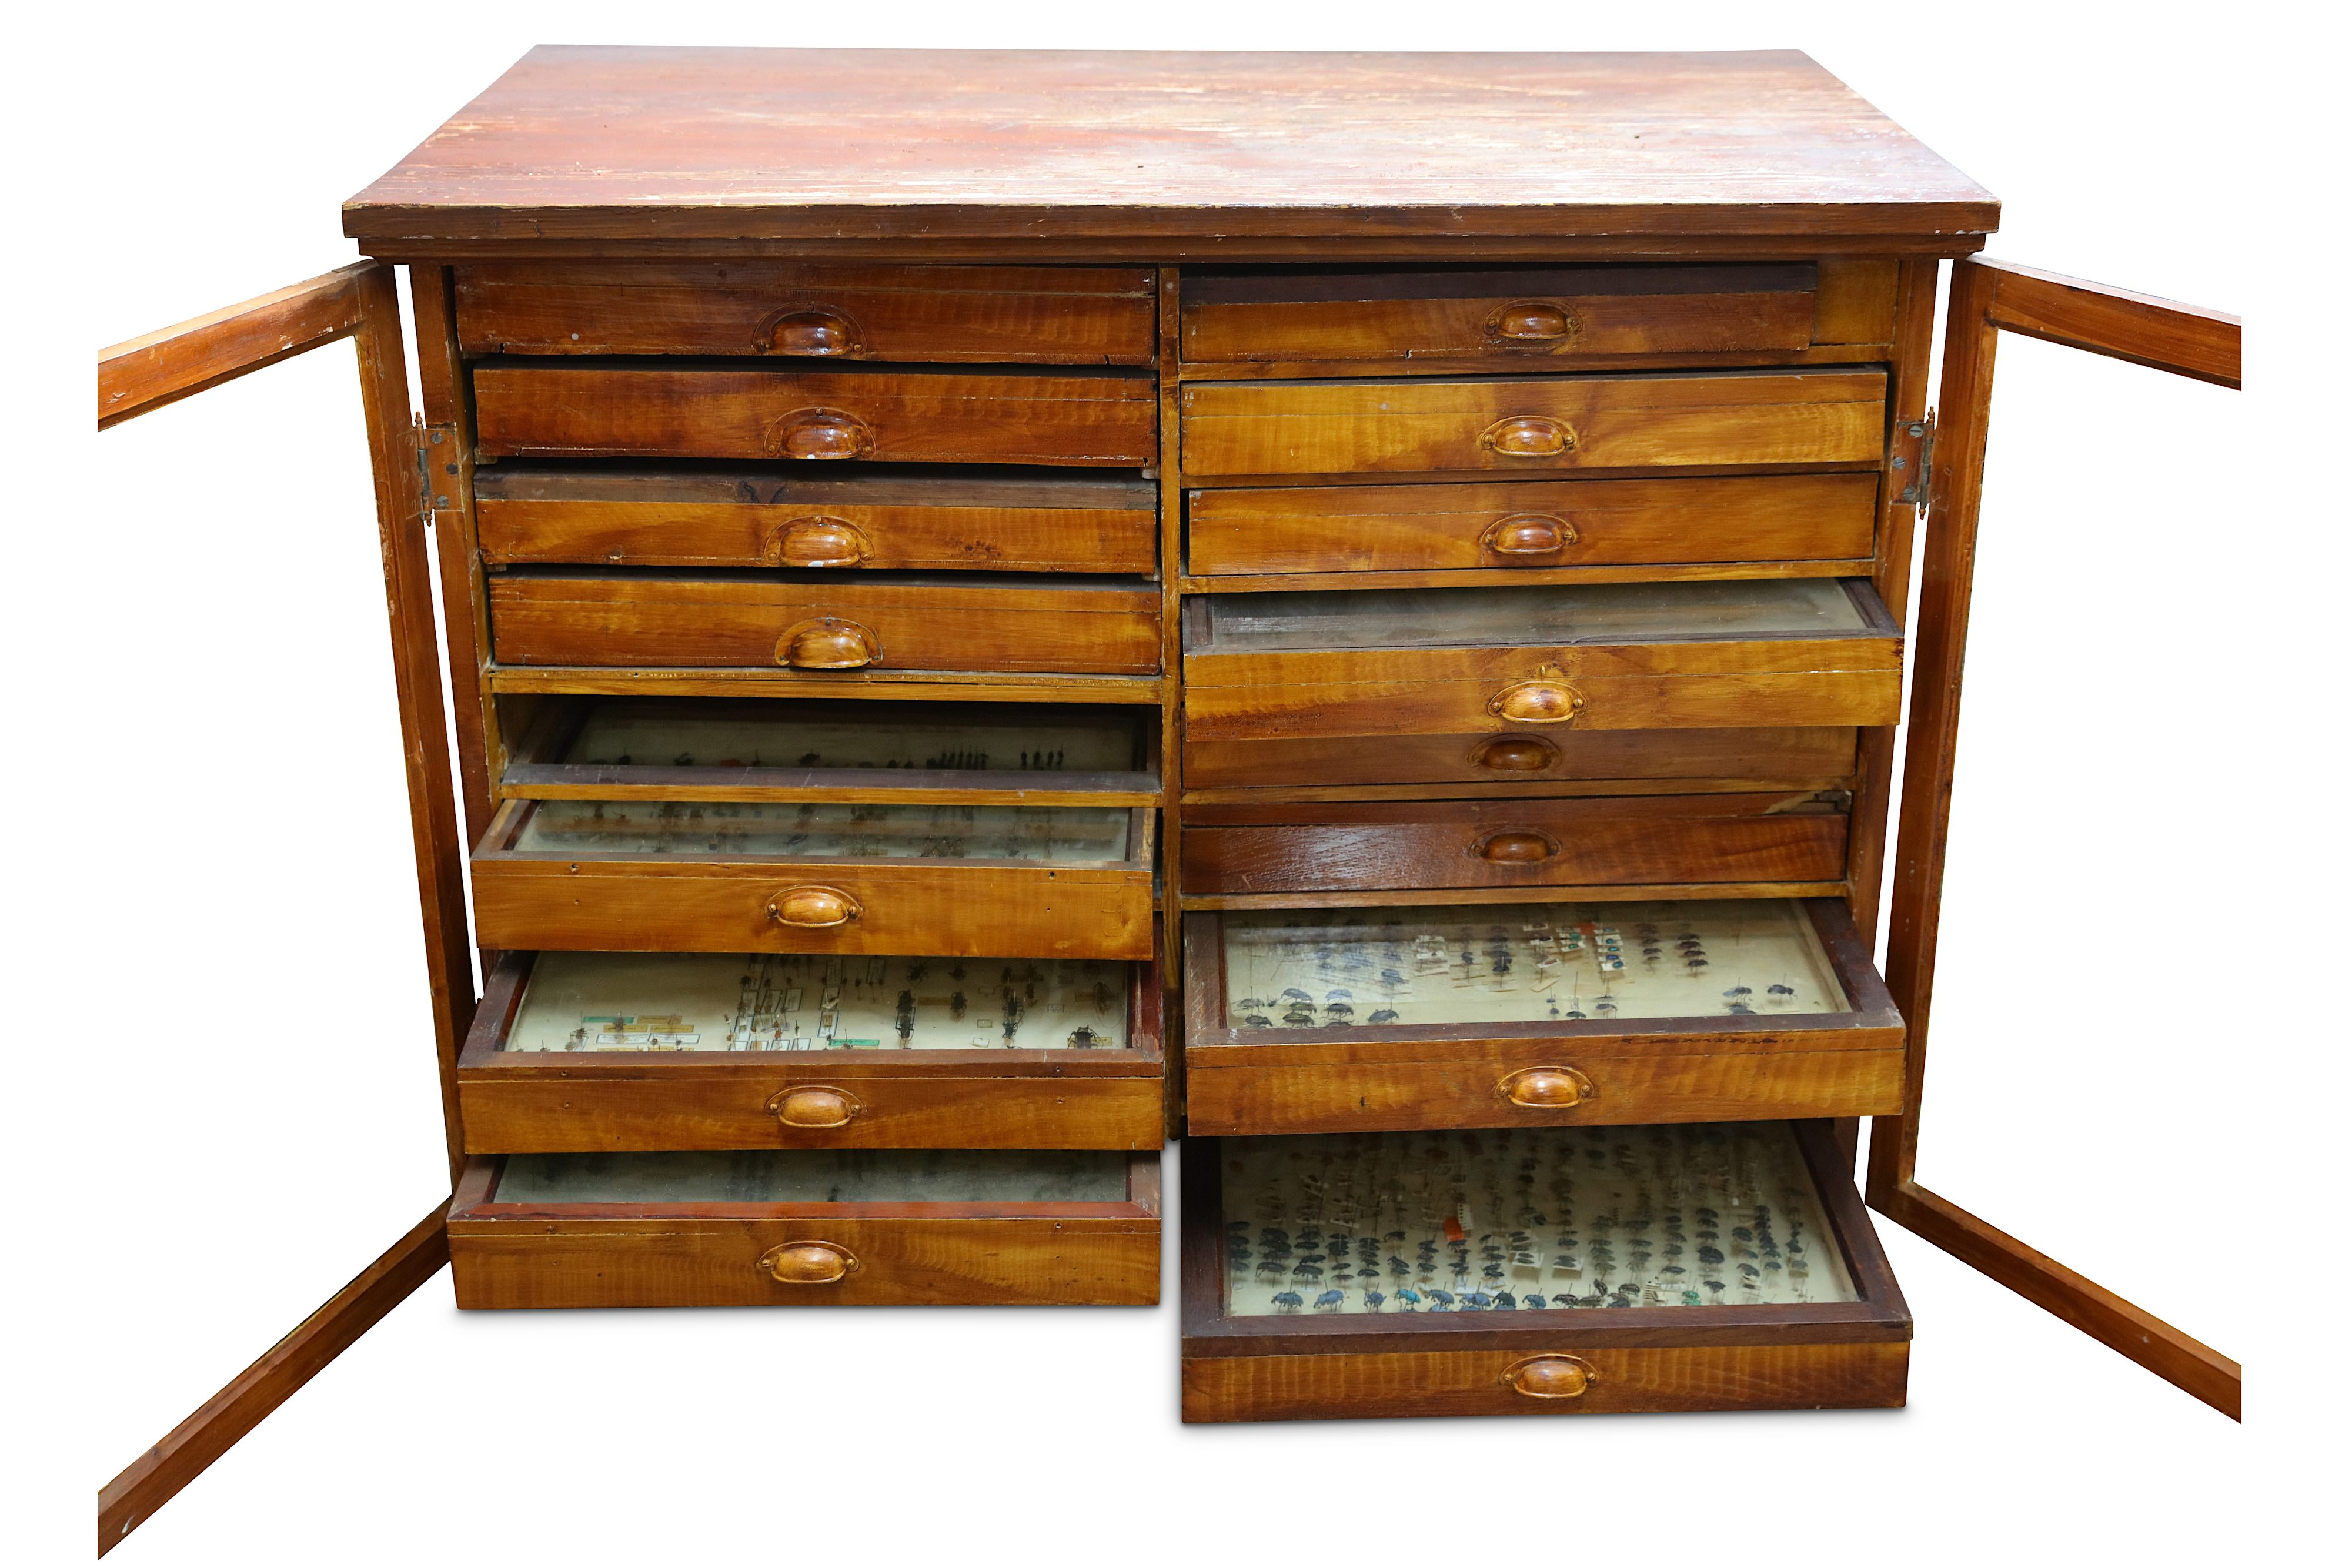 Lot 14 - TWO EARLY 20TH CENTURY ENGLISH STAINED WOOD COLLECTOR'S CABINETS DISPLAYING A LARGE COLLECTION OF IN